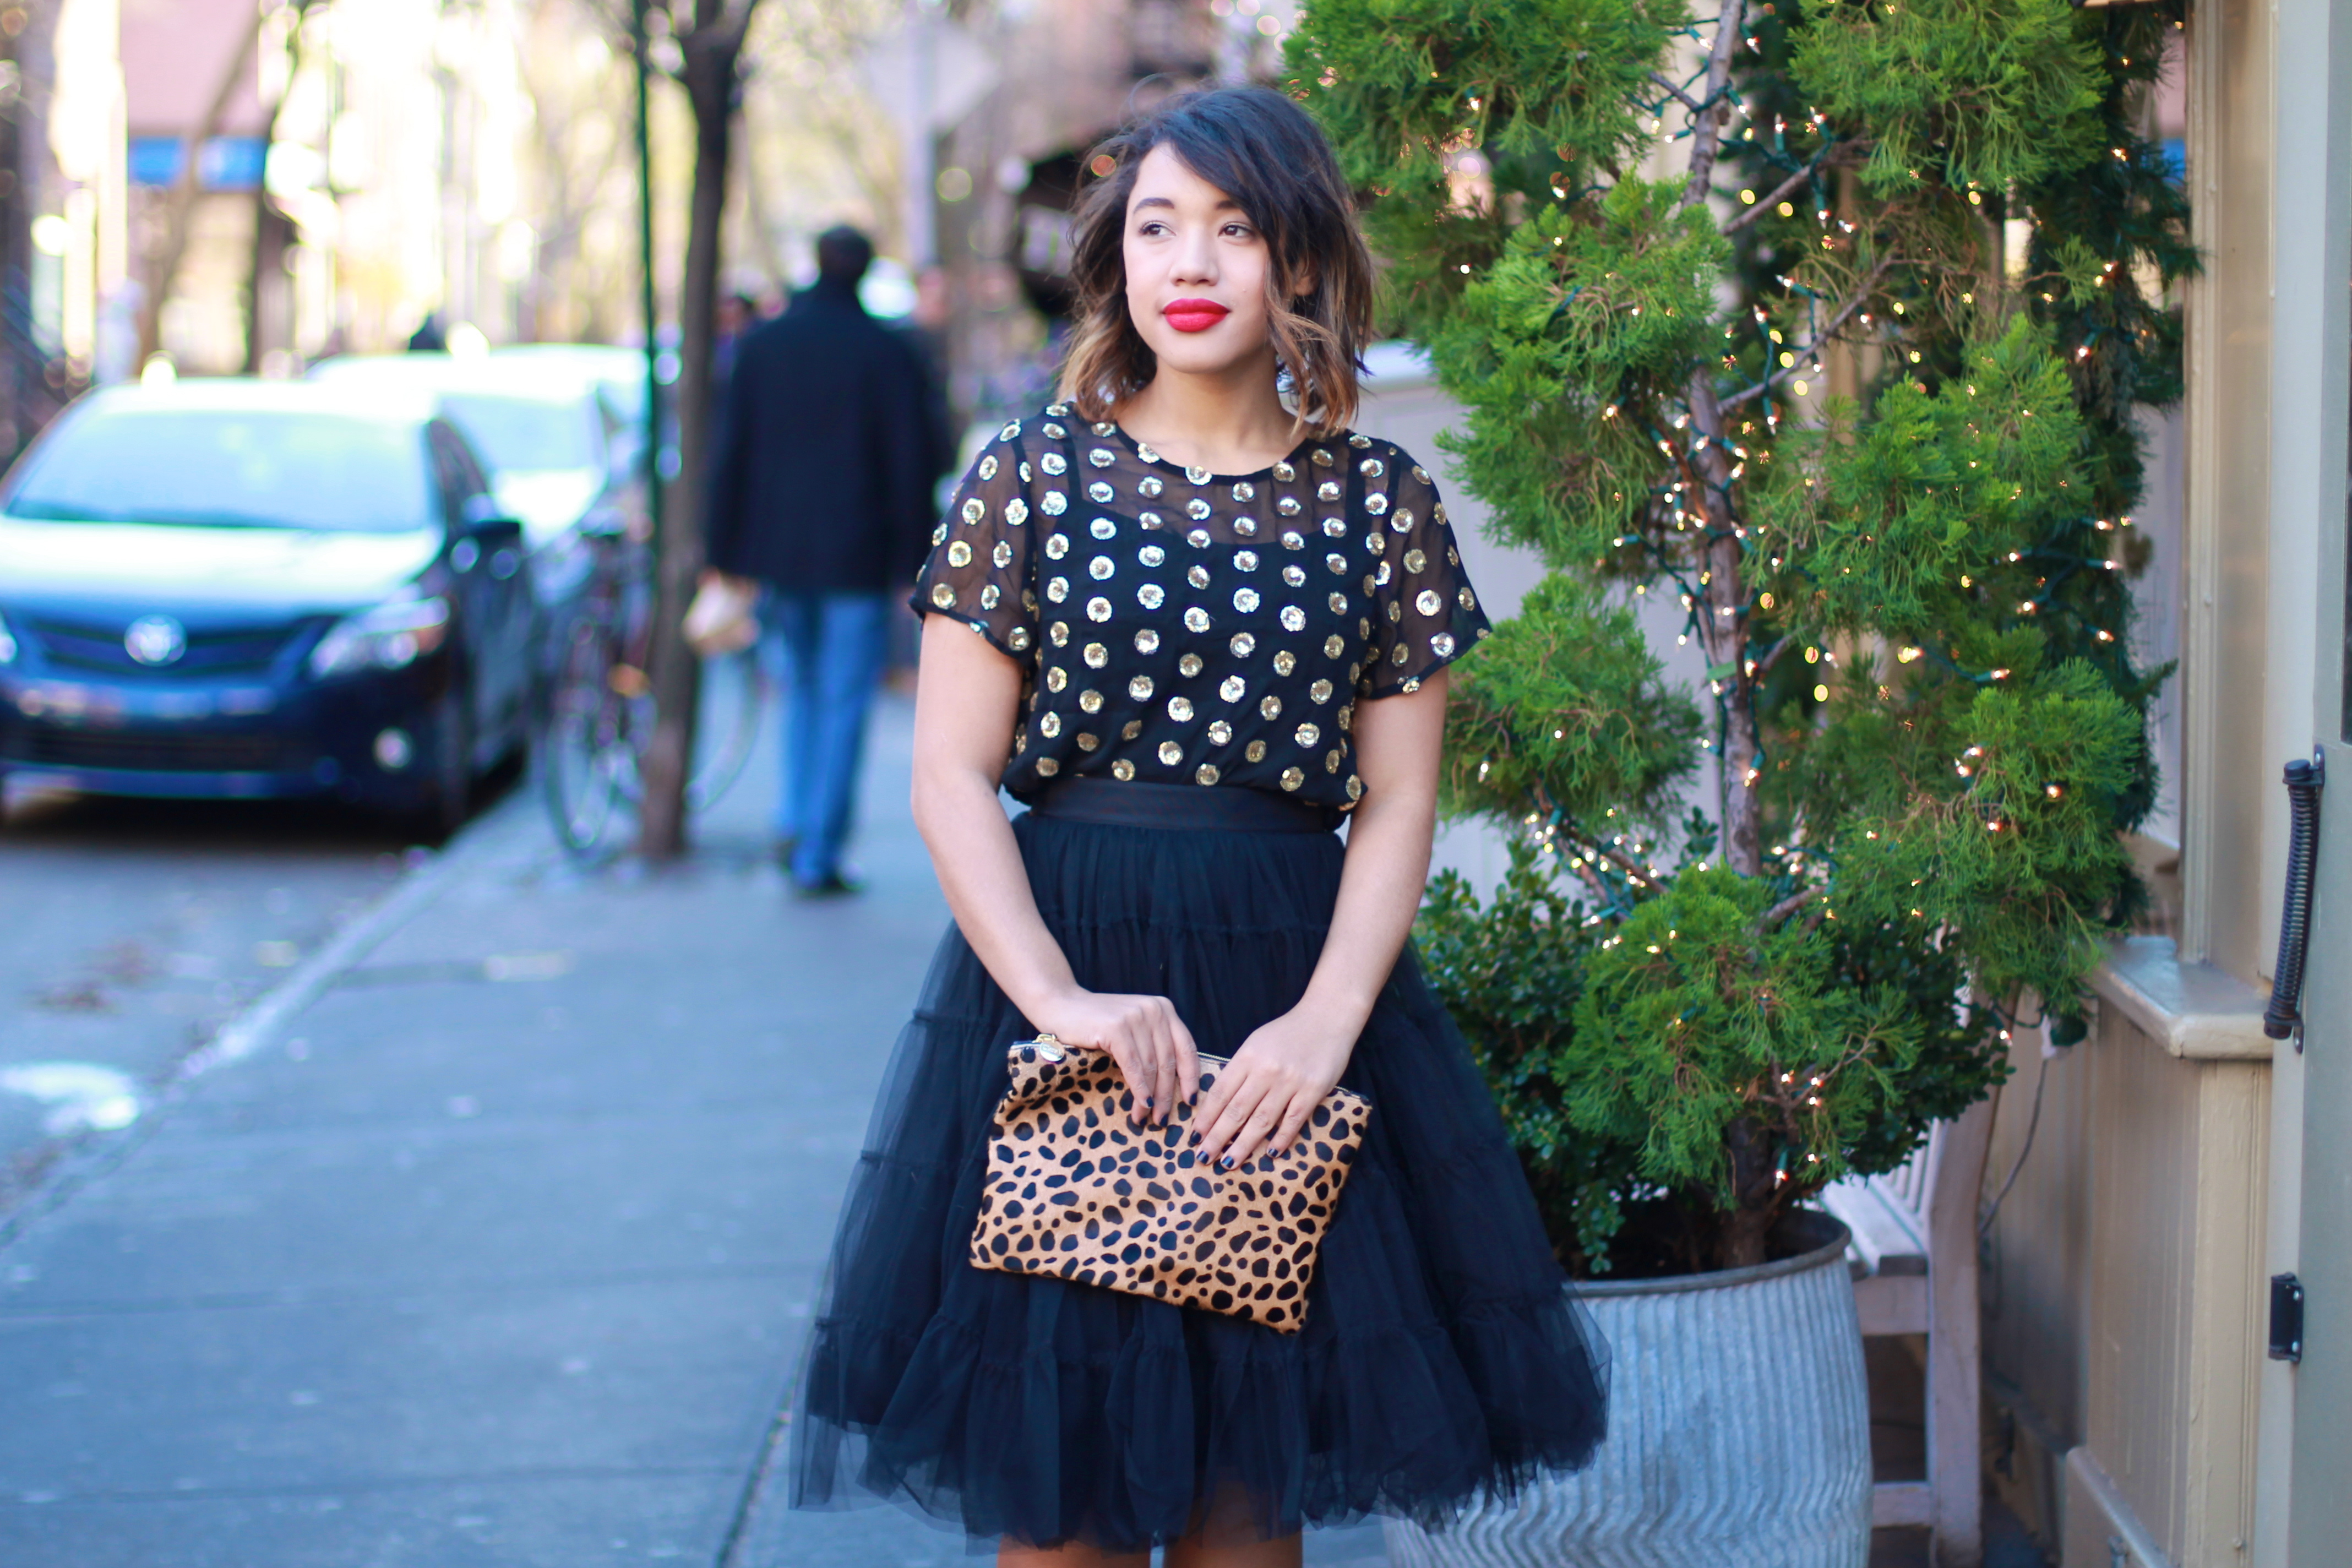 sequins sparkle black tulle skirt black tulle skirt black fashion blogger fashion blogger tulle skirt how to wear a tulle skirt fashion blogger to follower fashion bloggers to folllow black tulle skirt black fashion blogger black tulle skirt sequin polka dot sparkle polka dot holiday style holiday fashion holiday style holiday fashion style holiday outfit christmas eve blog  black and gold new years fashion new years style